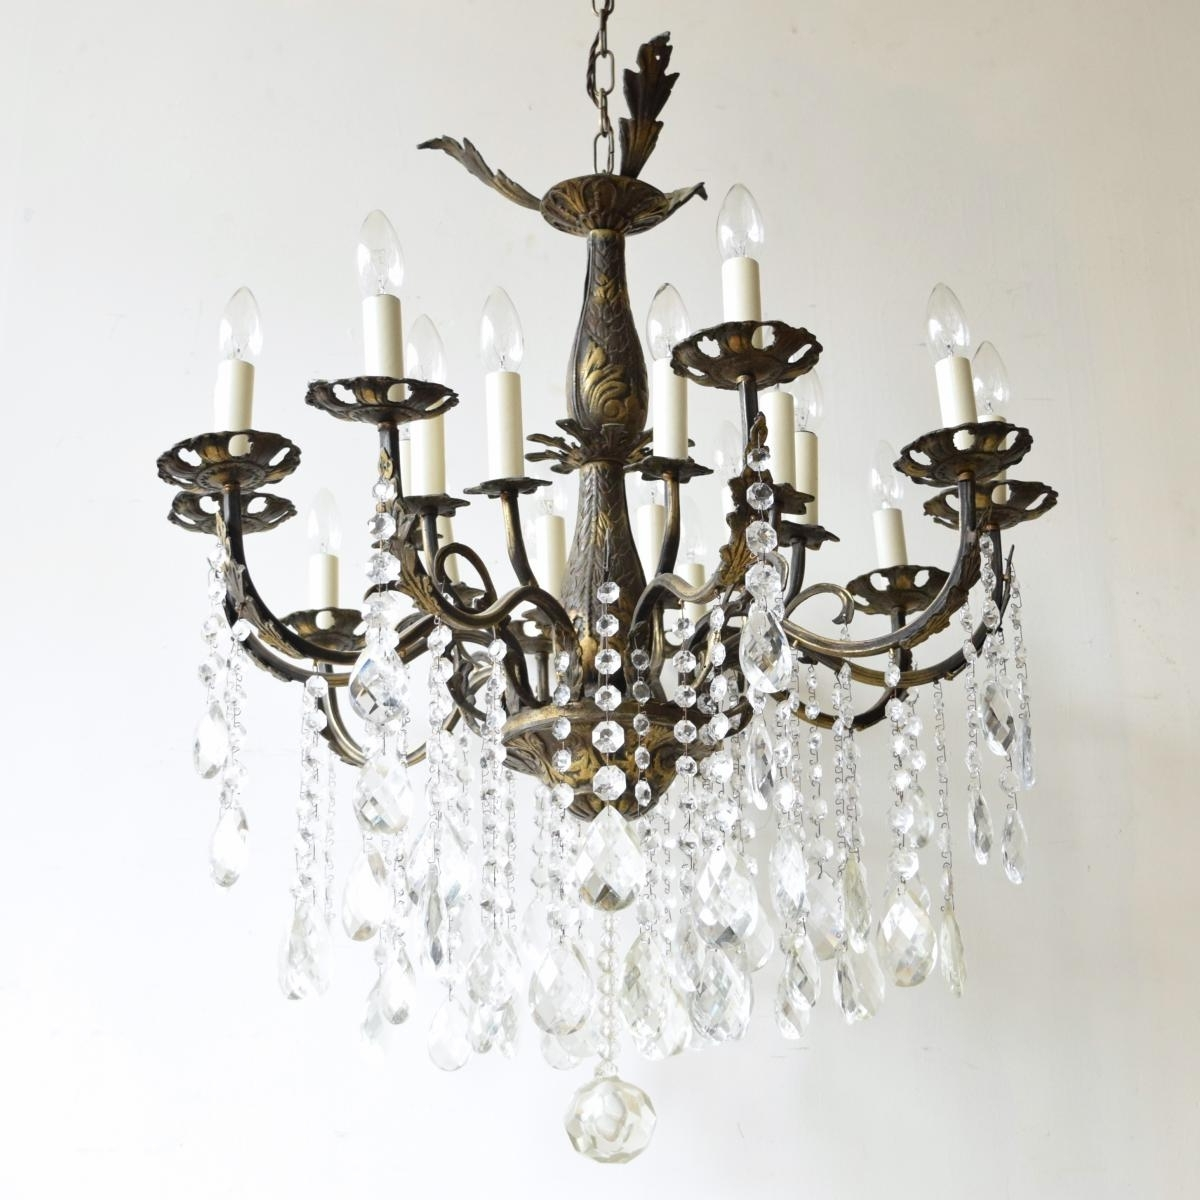 Newest Vintage French Chandeliers With Regard To Large Vintage French 16 Light Brass Chandelier For Sale At Pamono (View 4 of 15)